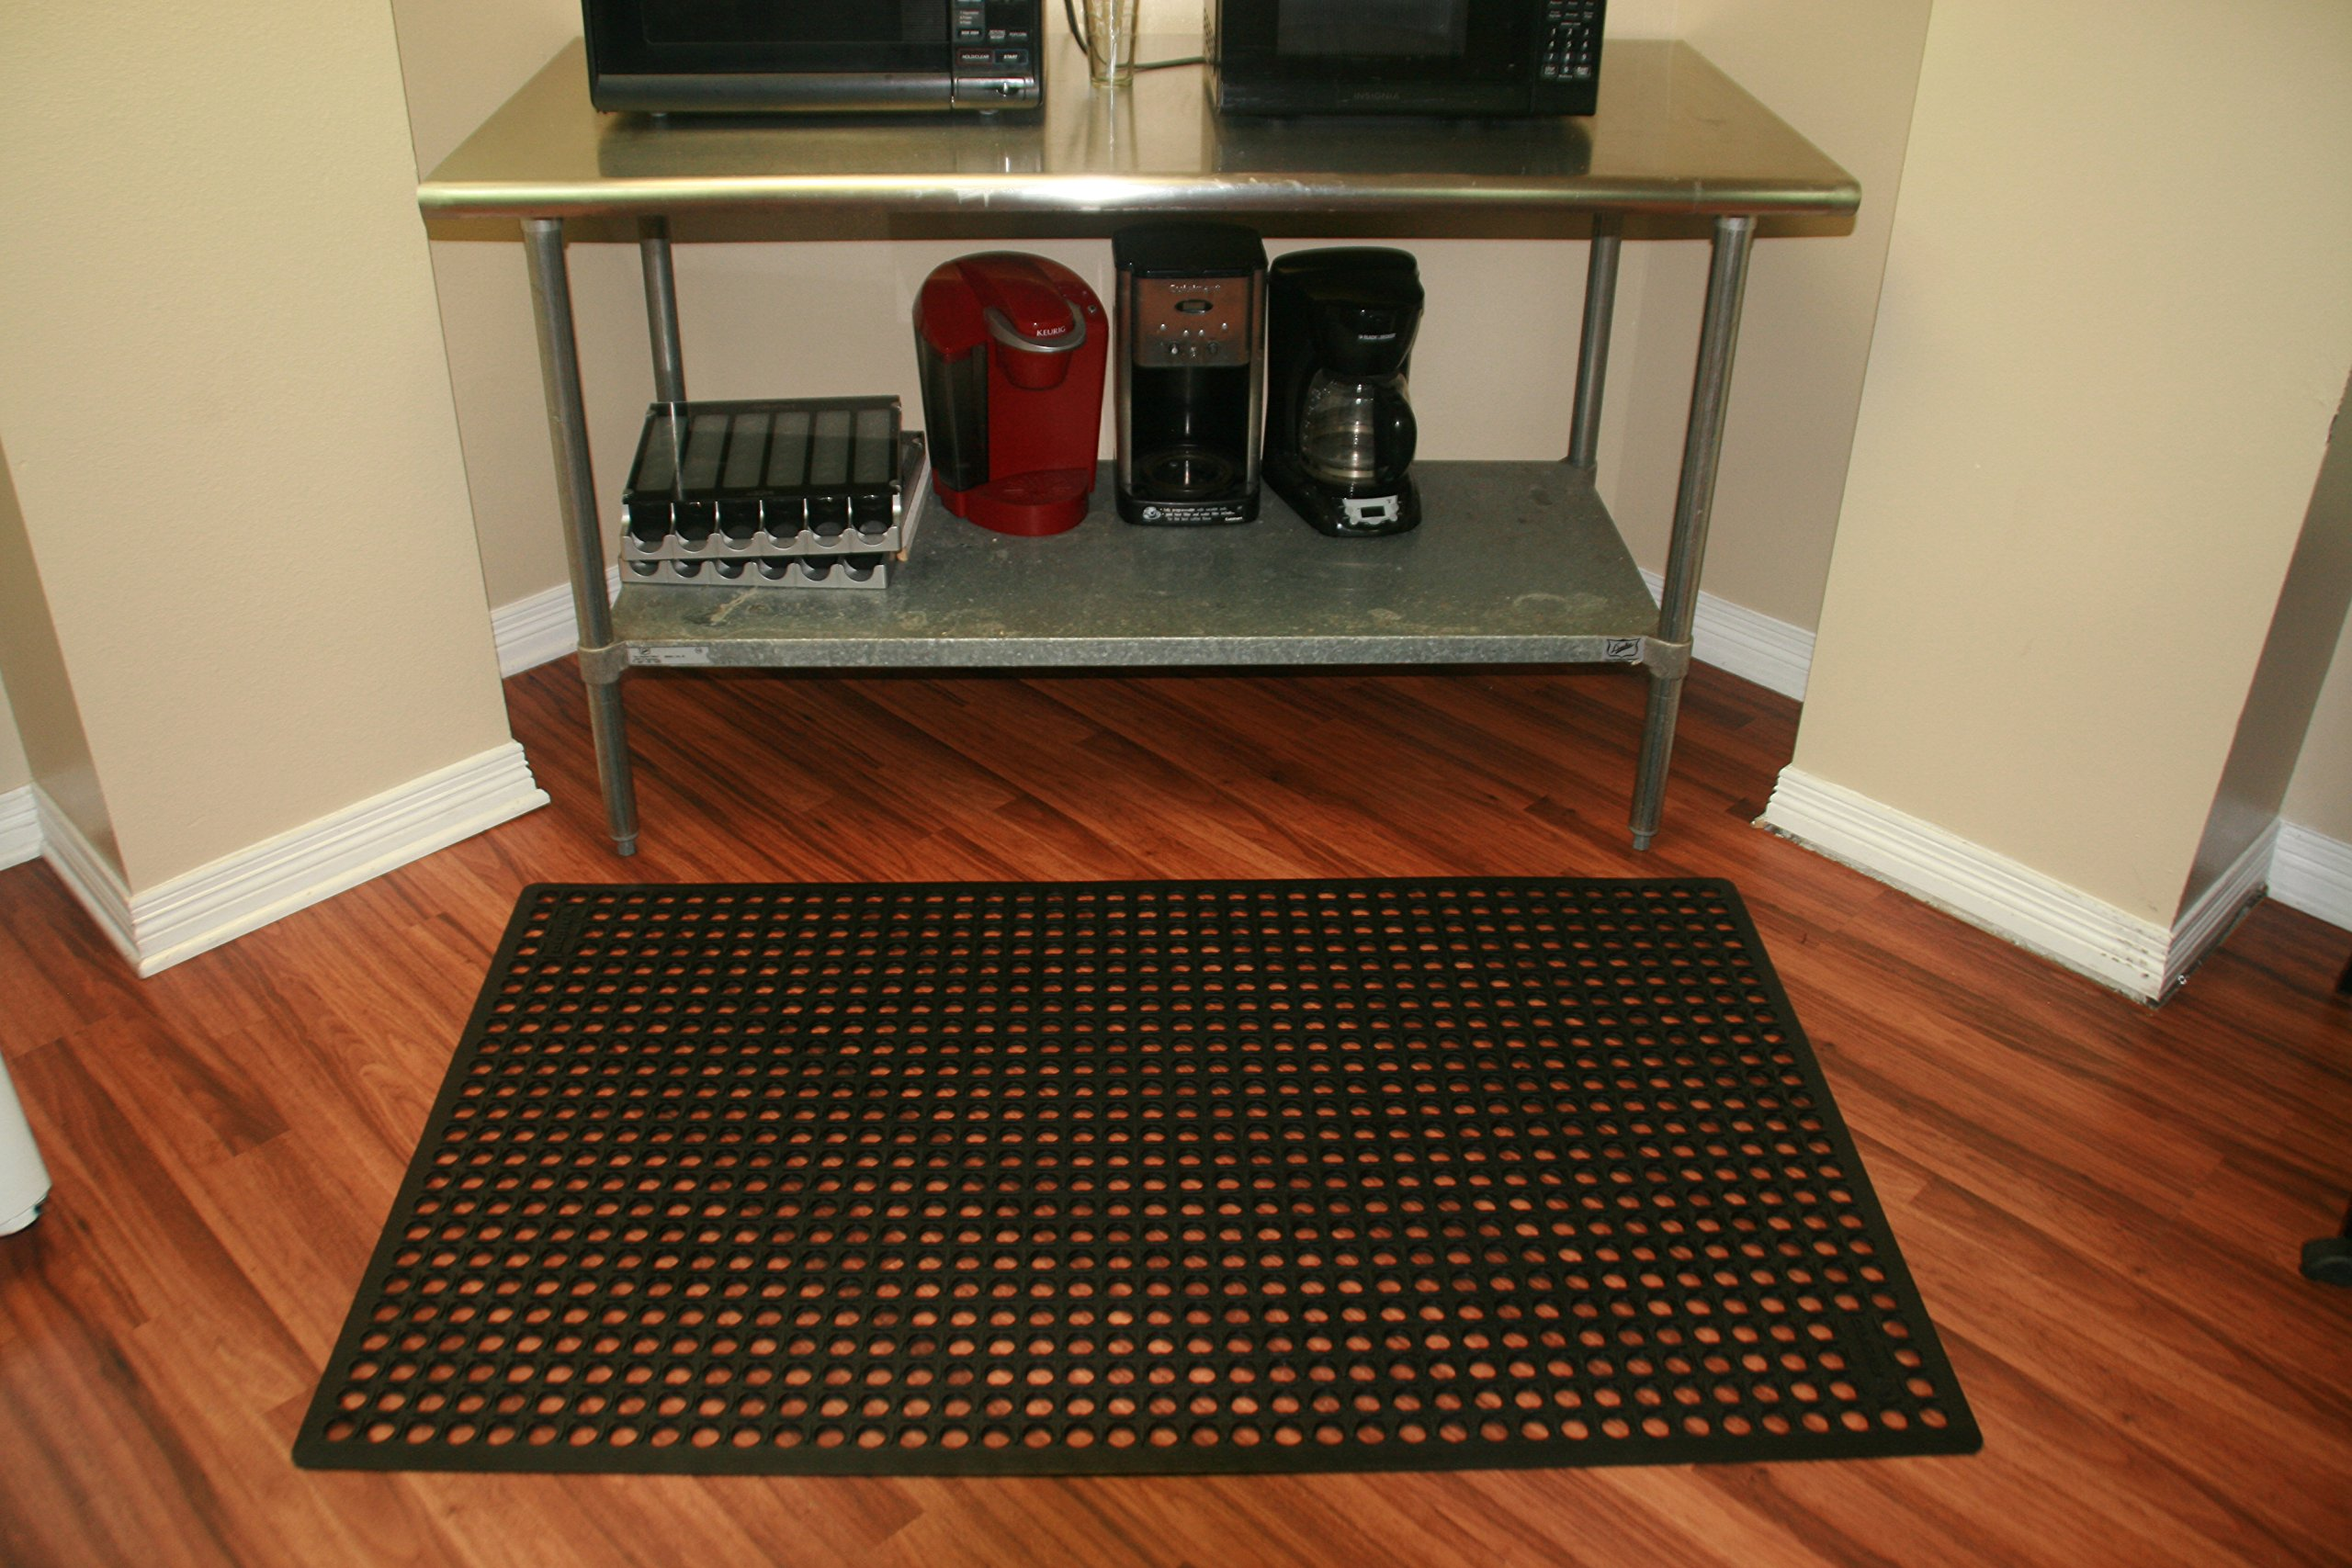 Rhino Mats KCT-3660B K-Series Comfort Tract Anti-fatigue Drain-thru Mat, 3' x 5', Black by Rhino Mats (Image #7)